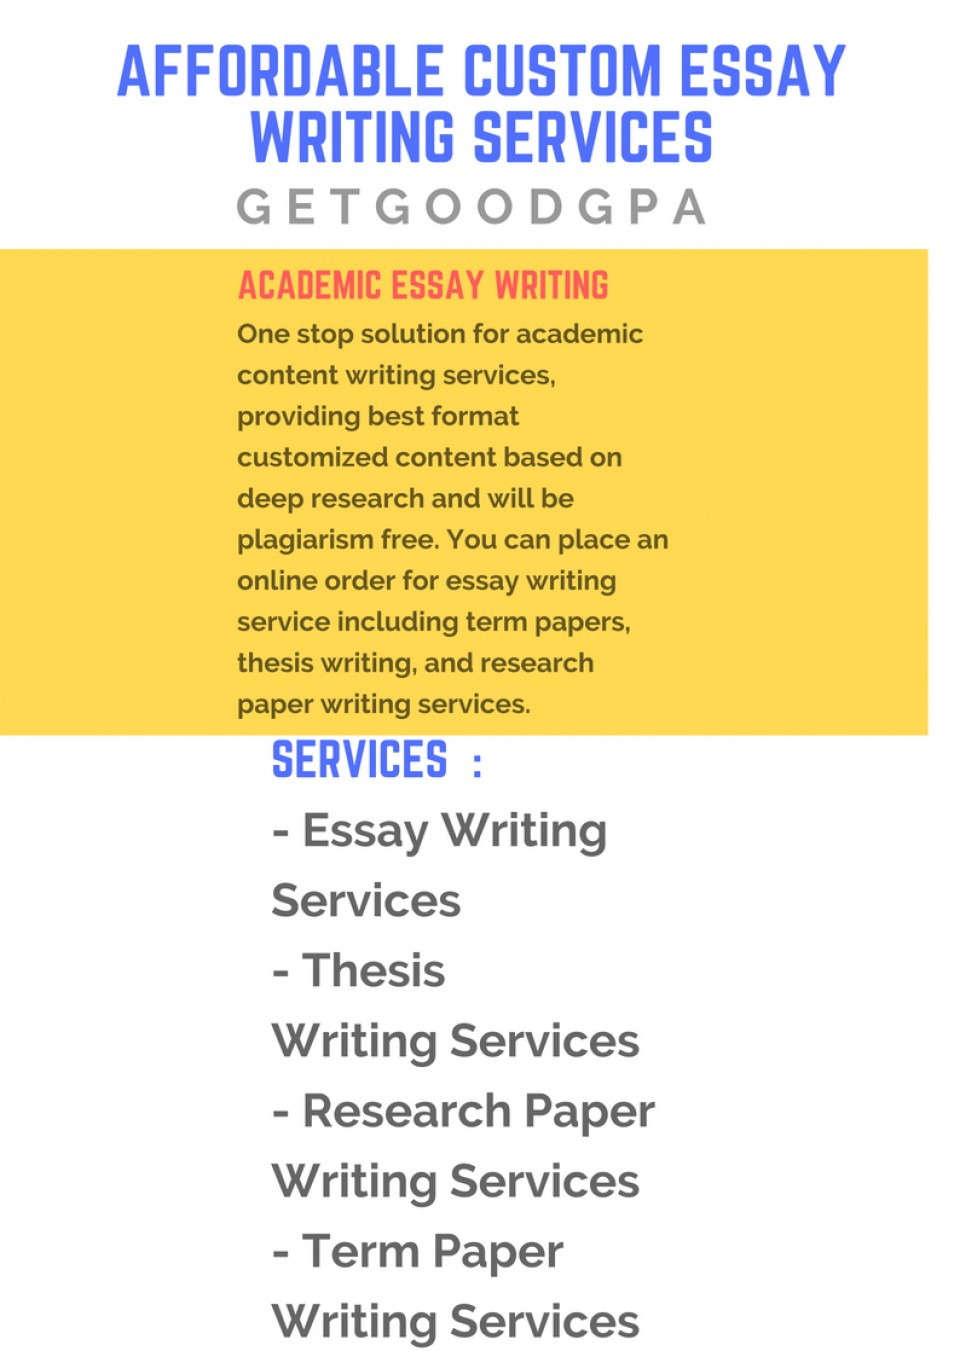 002 1p24u5izogrgxlkfzqmxvgq Research Paper Writing Dreaded Service Services In India Online Chennai 960